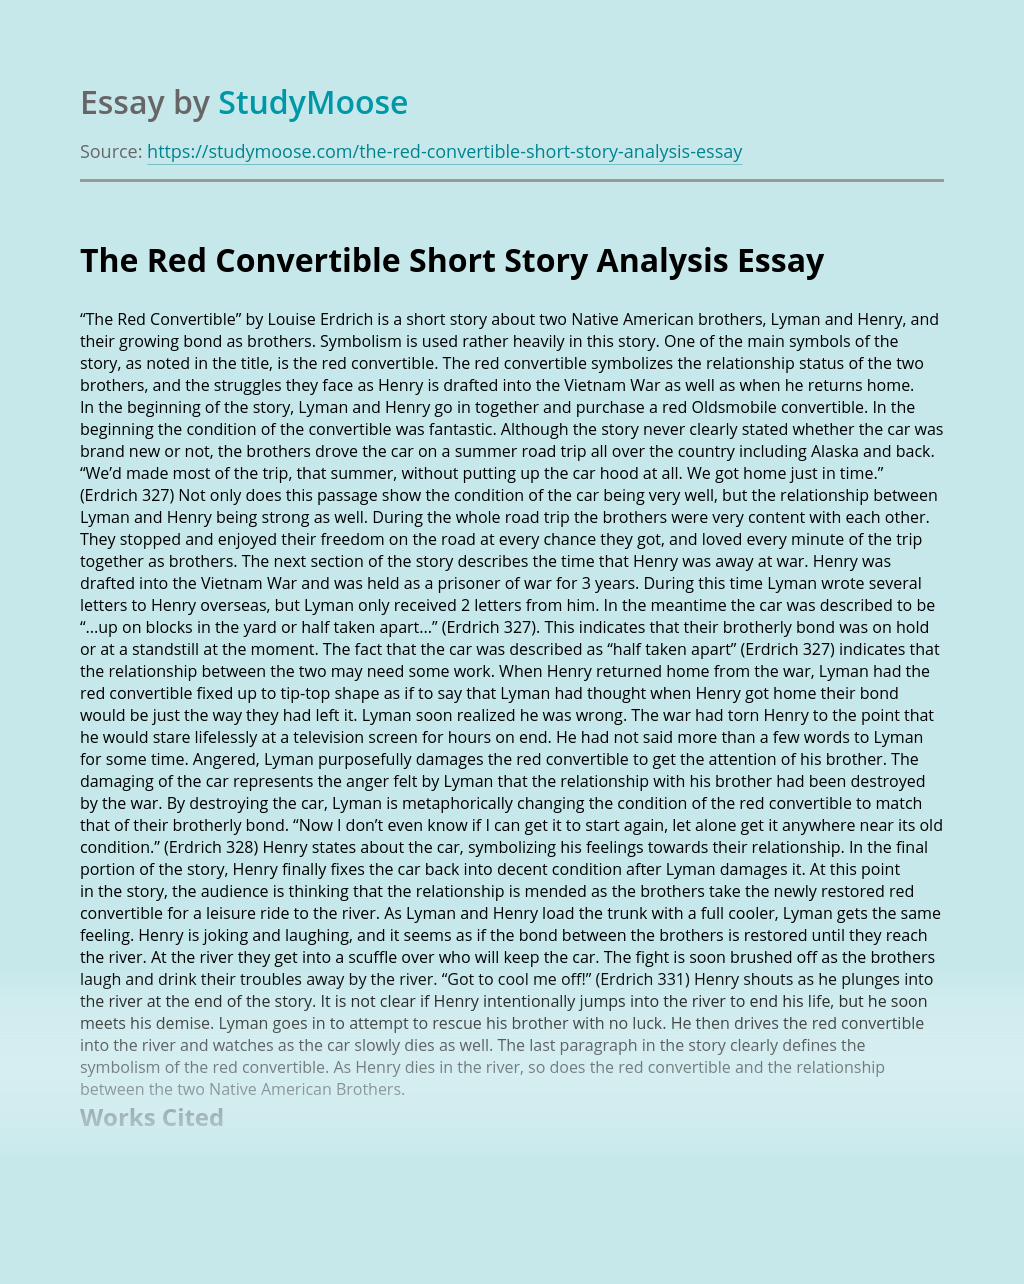 The Red Convertible Short Story Analysis